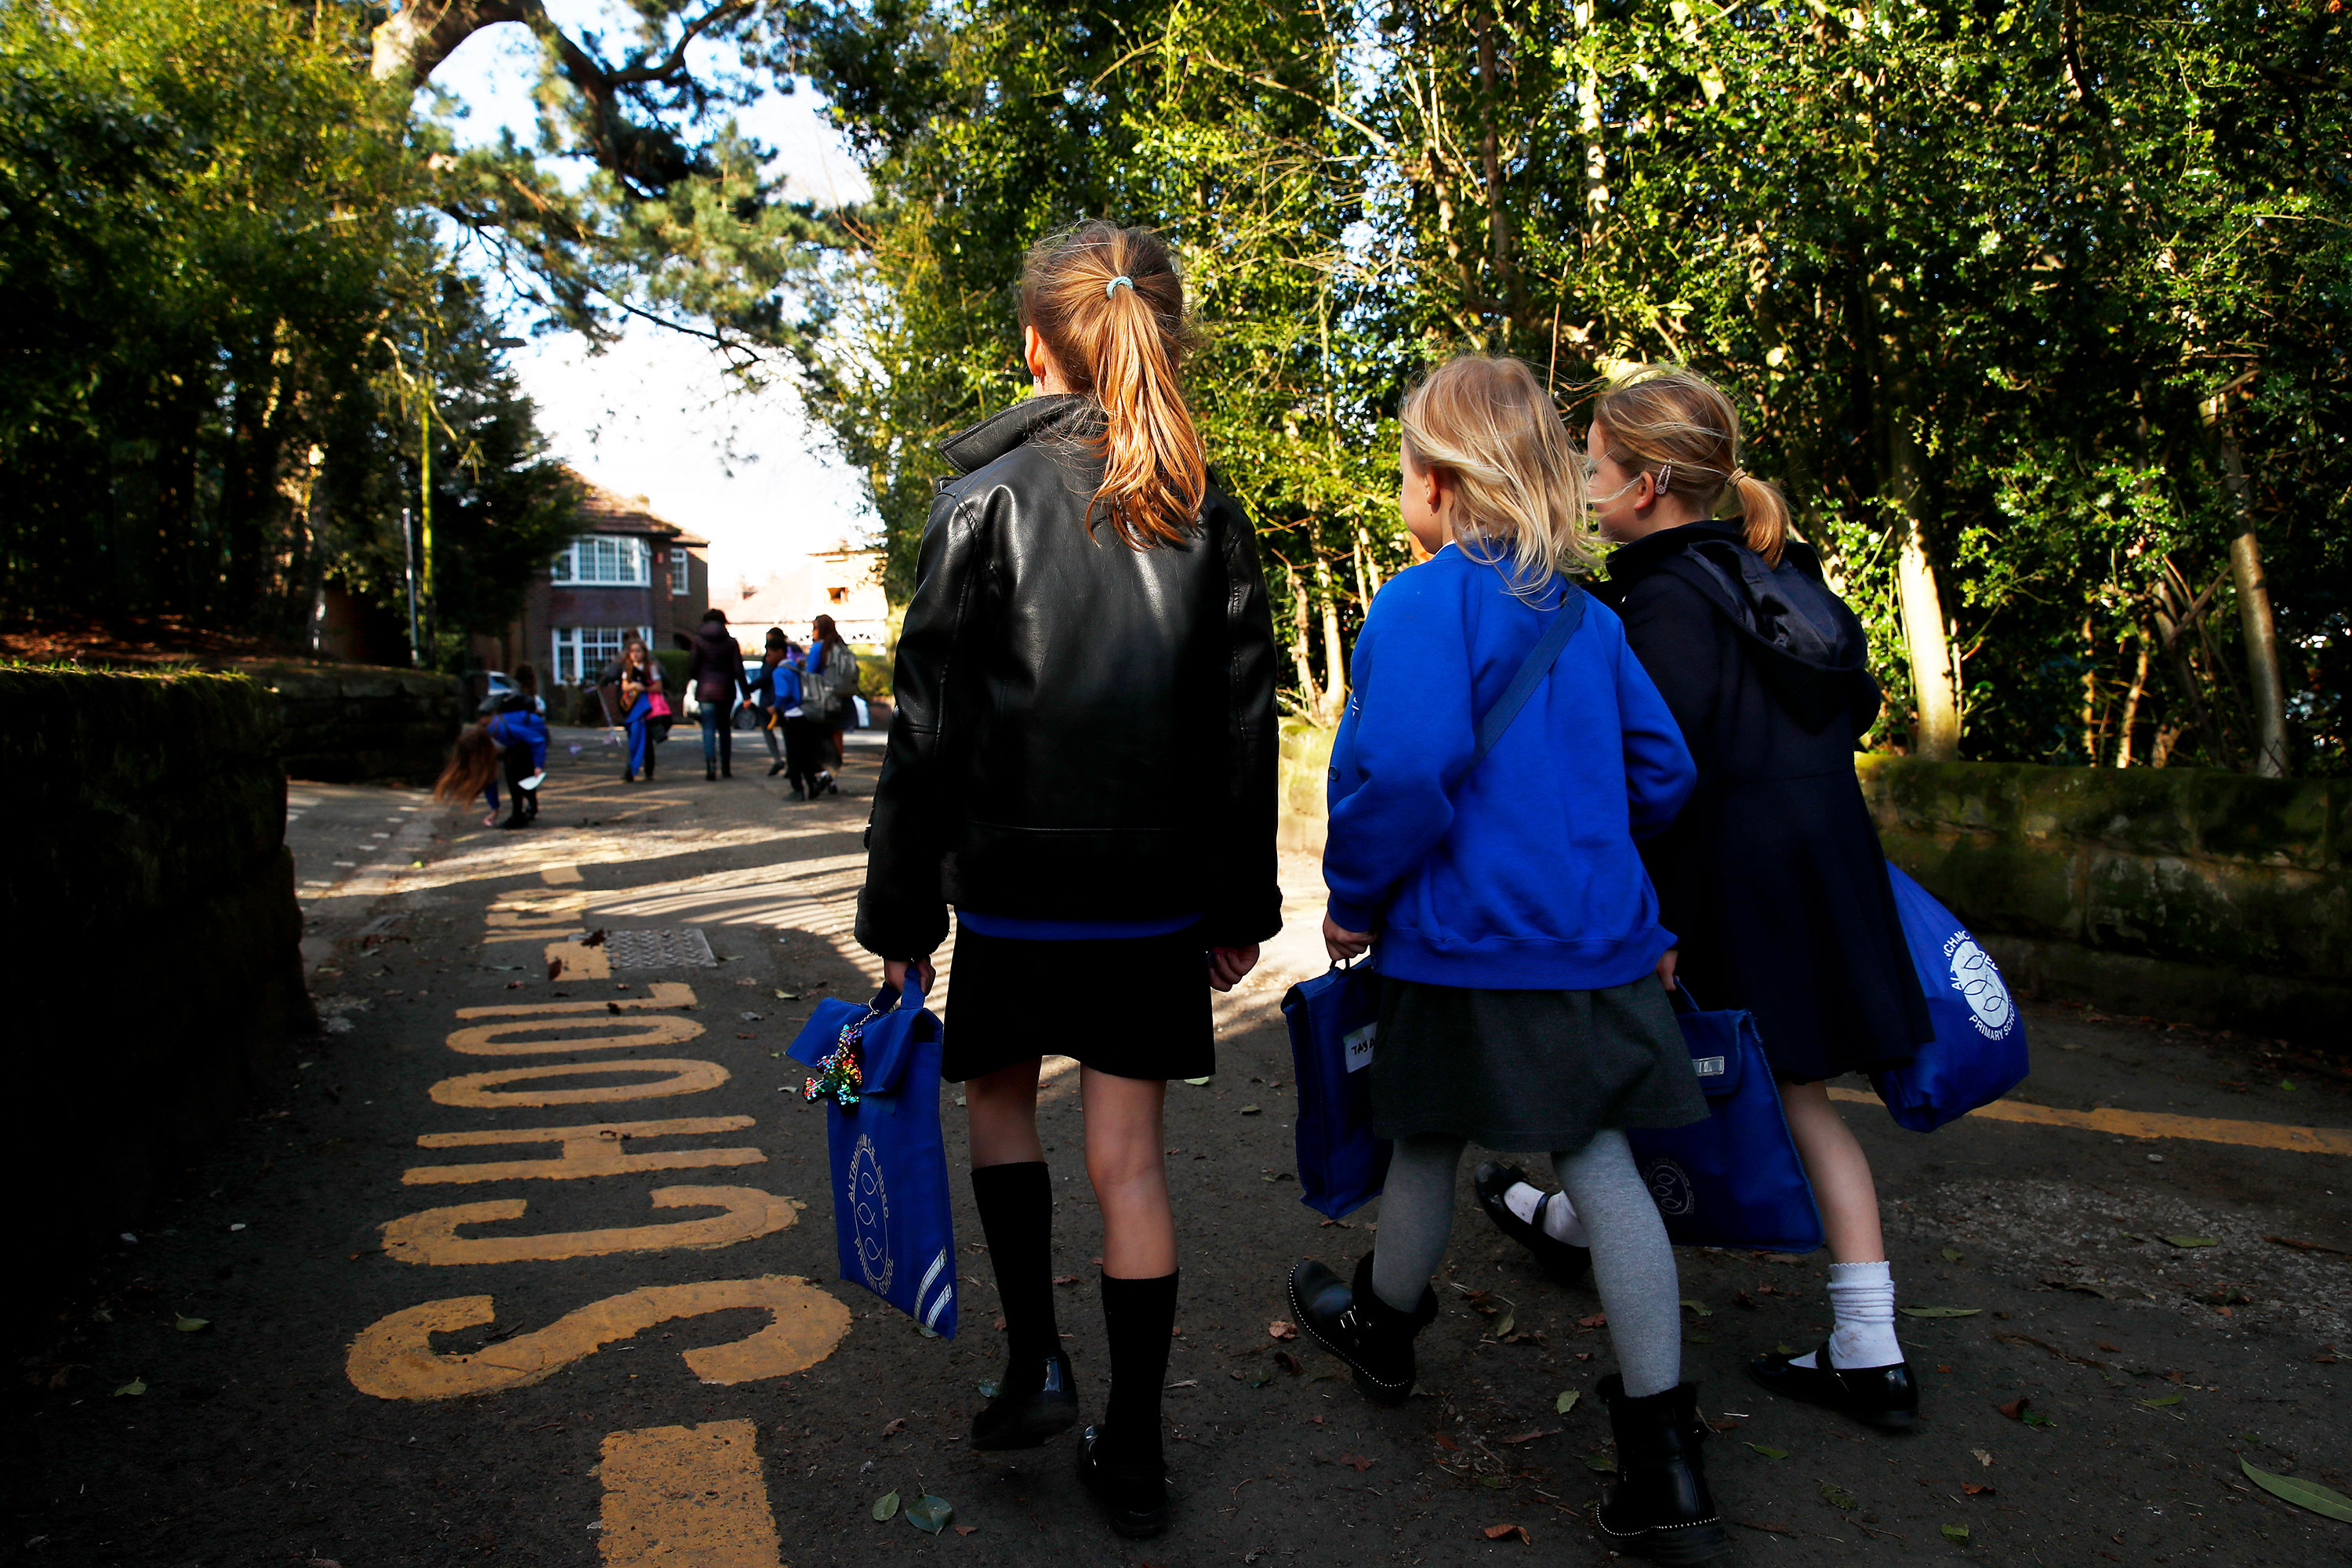 Children walk home from school in Altrincham, England, on March 20.